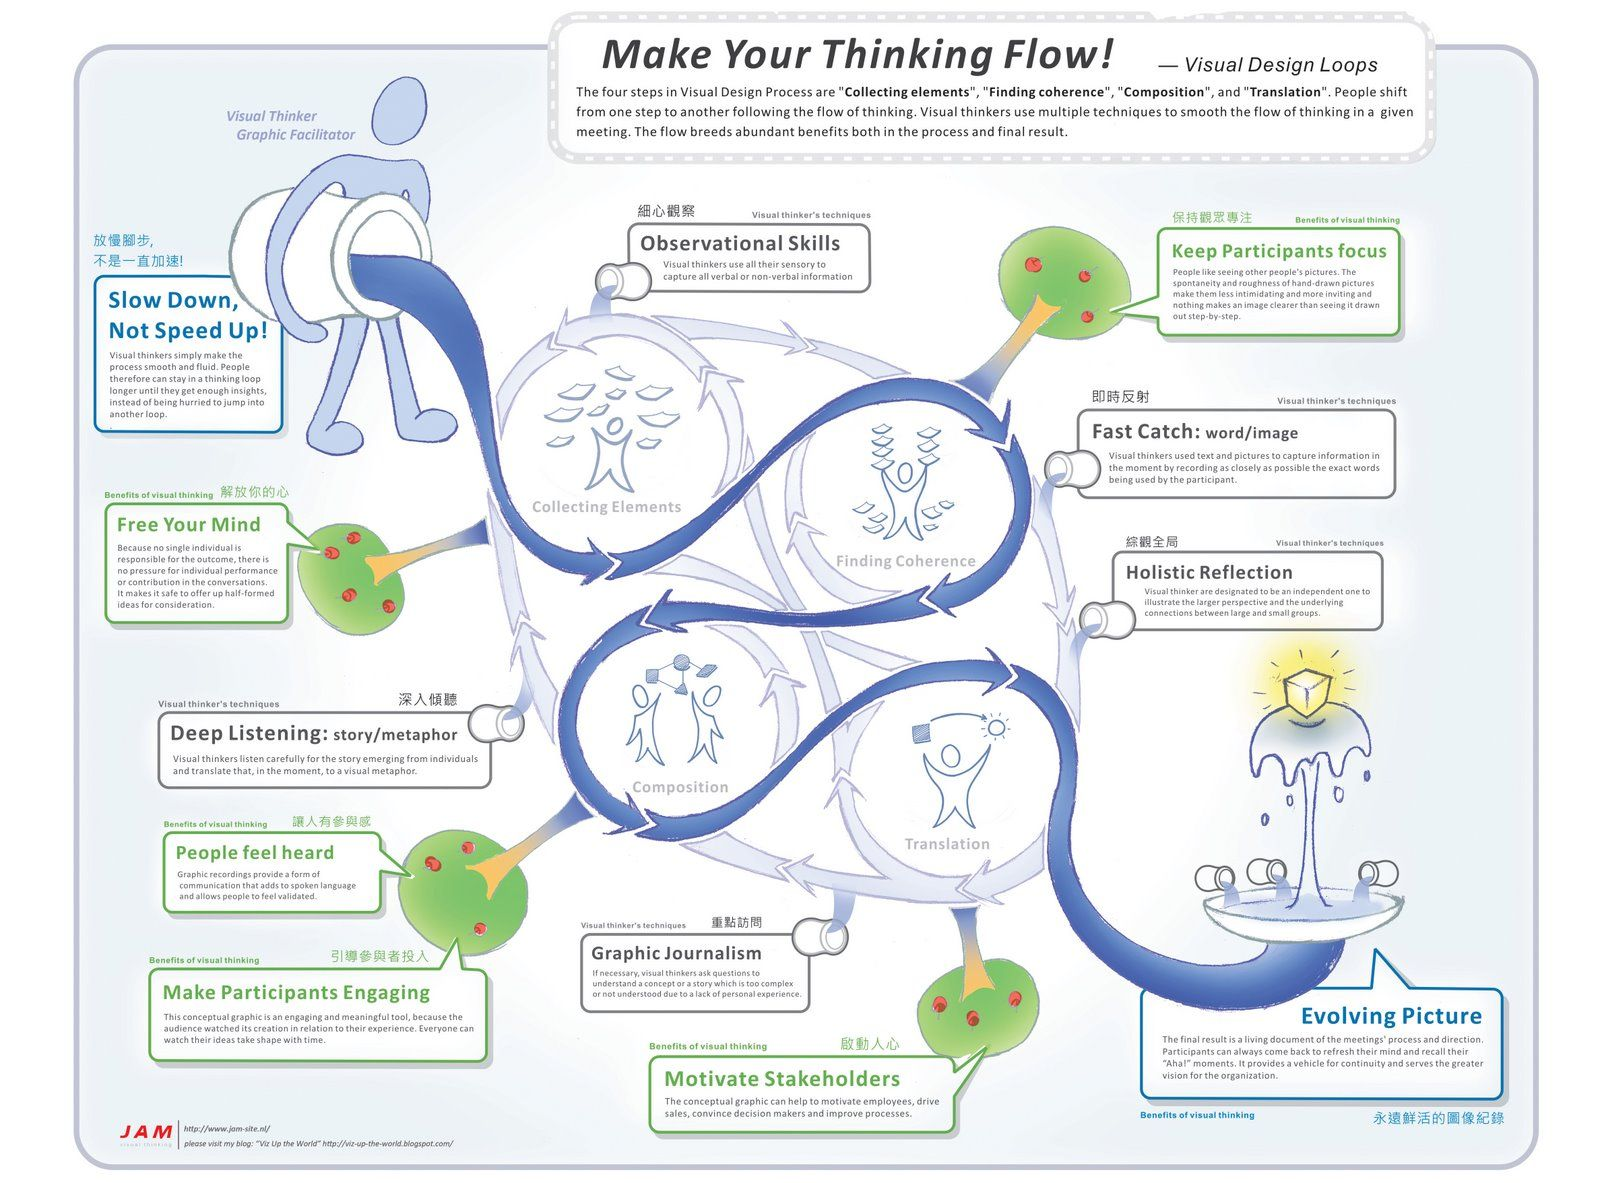 This poster is my first step to decipher the visual thinking process they are originated from jam as a concept to describe visual design